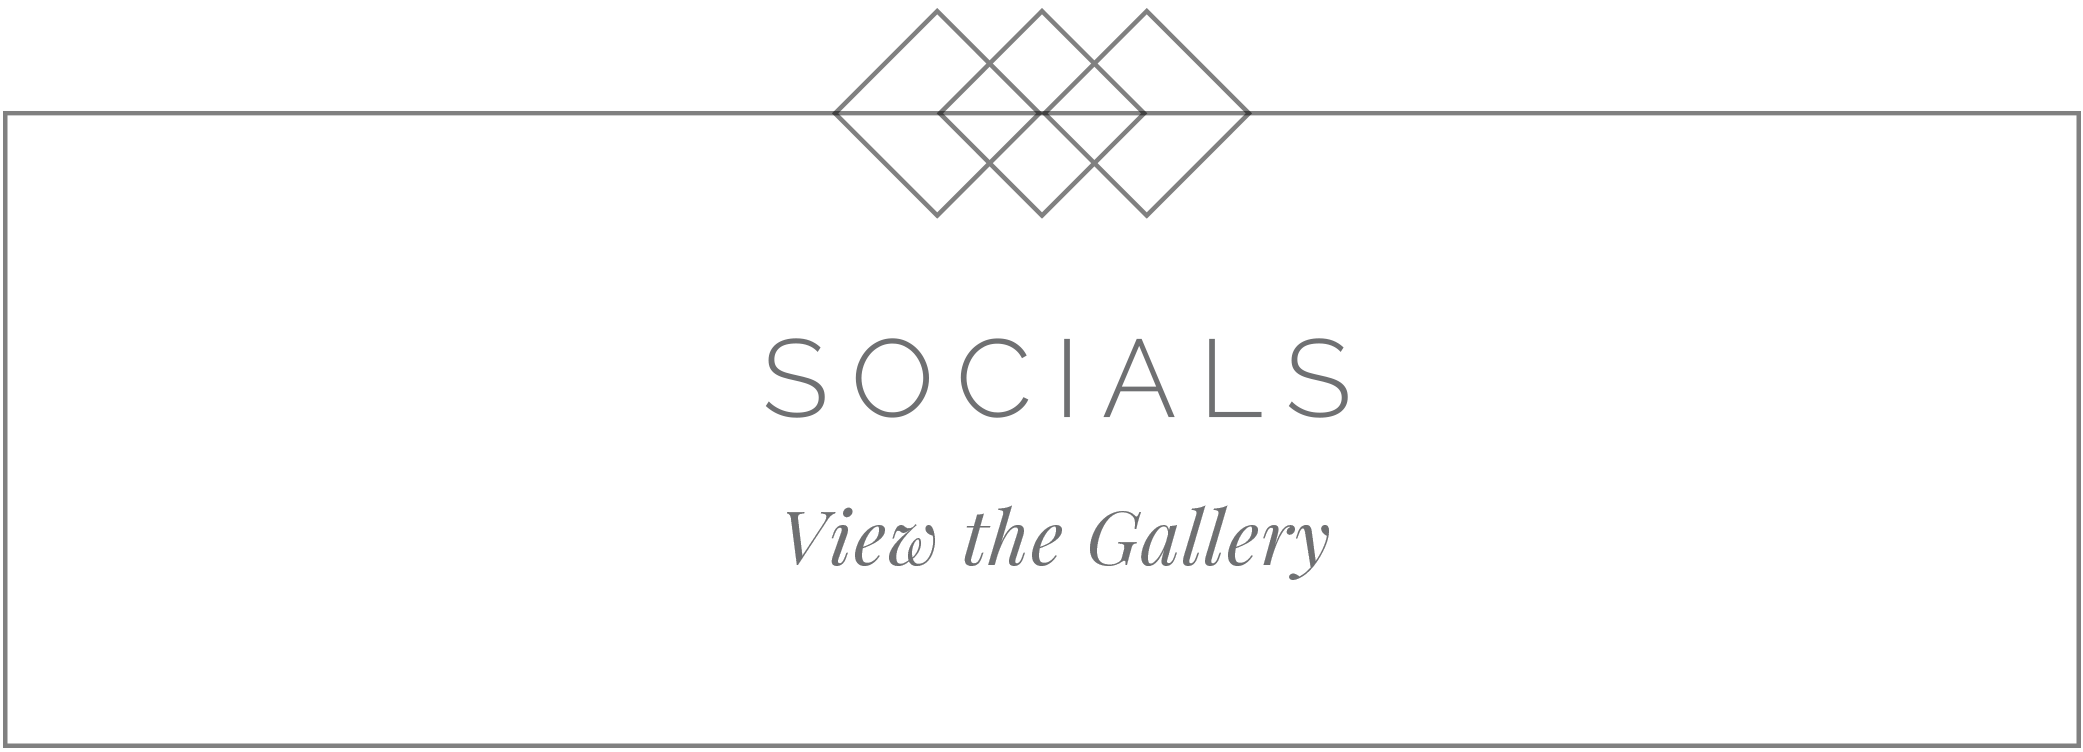 Bianchi Productions Social Gallery